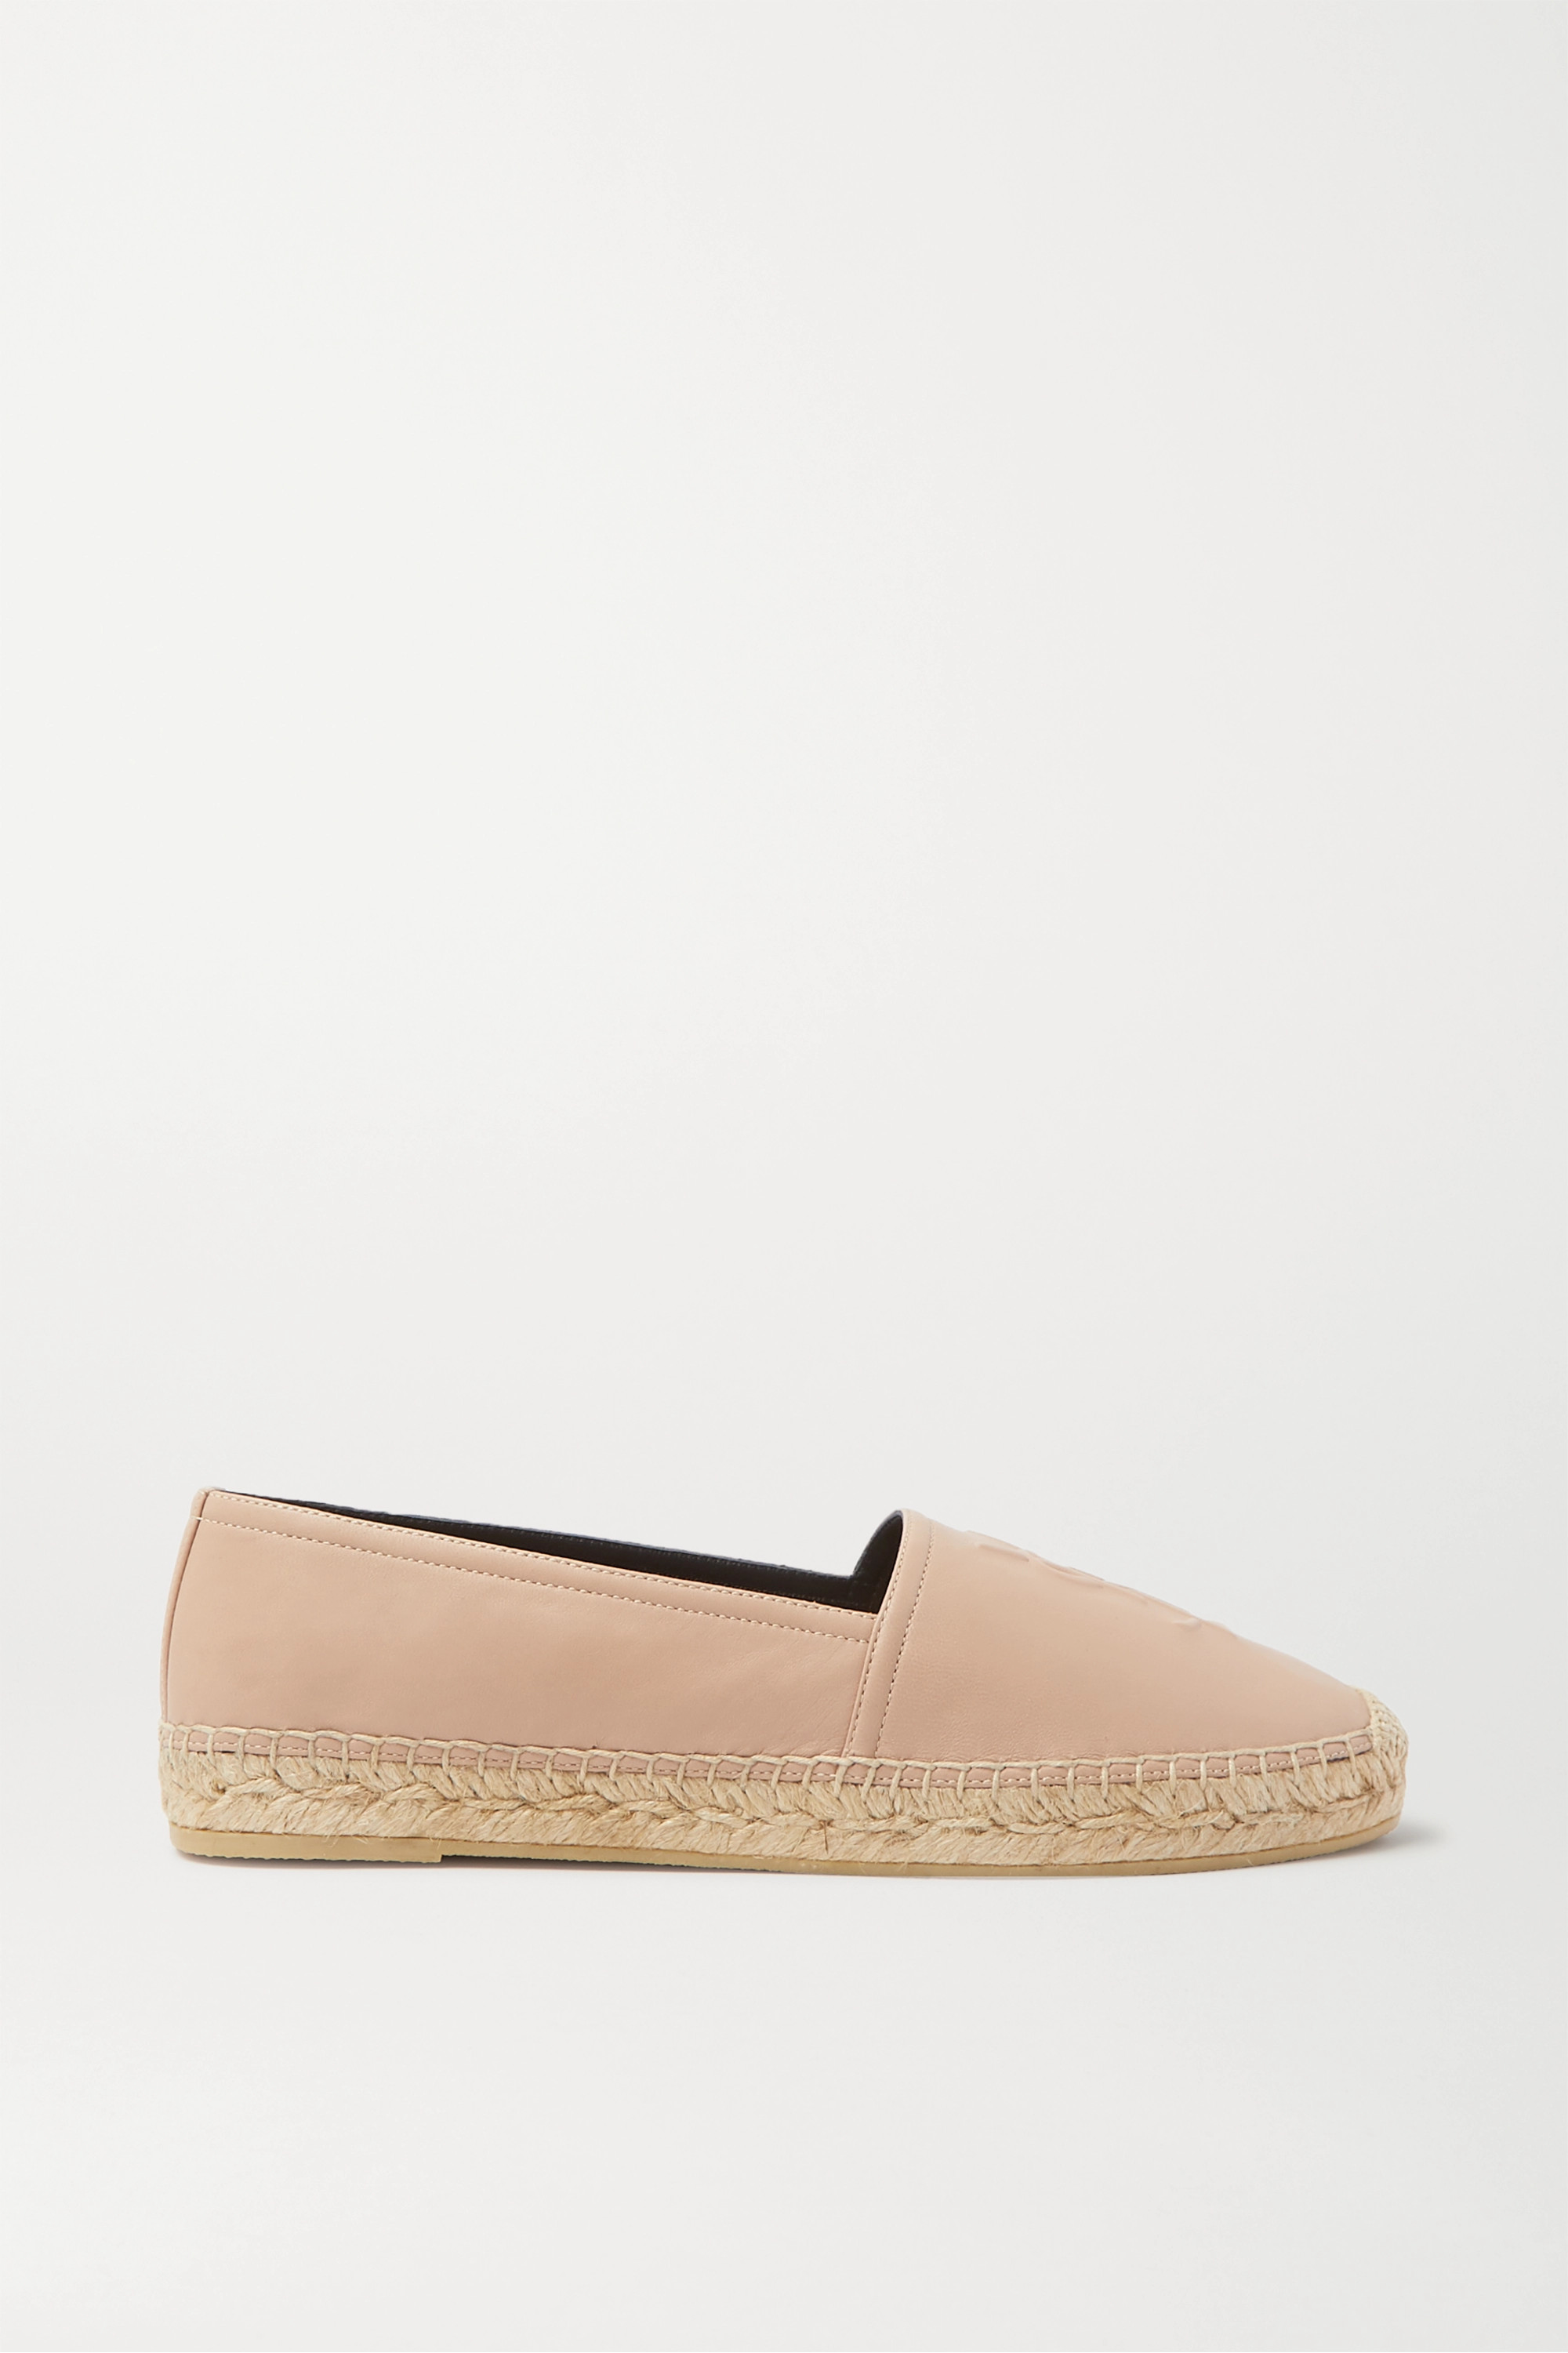 SAINT LAURENT Logo-embossed leather espadrilles